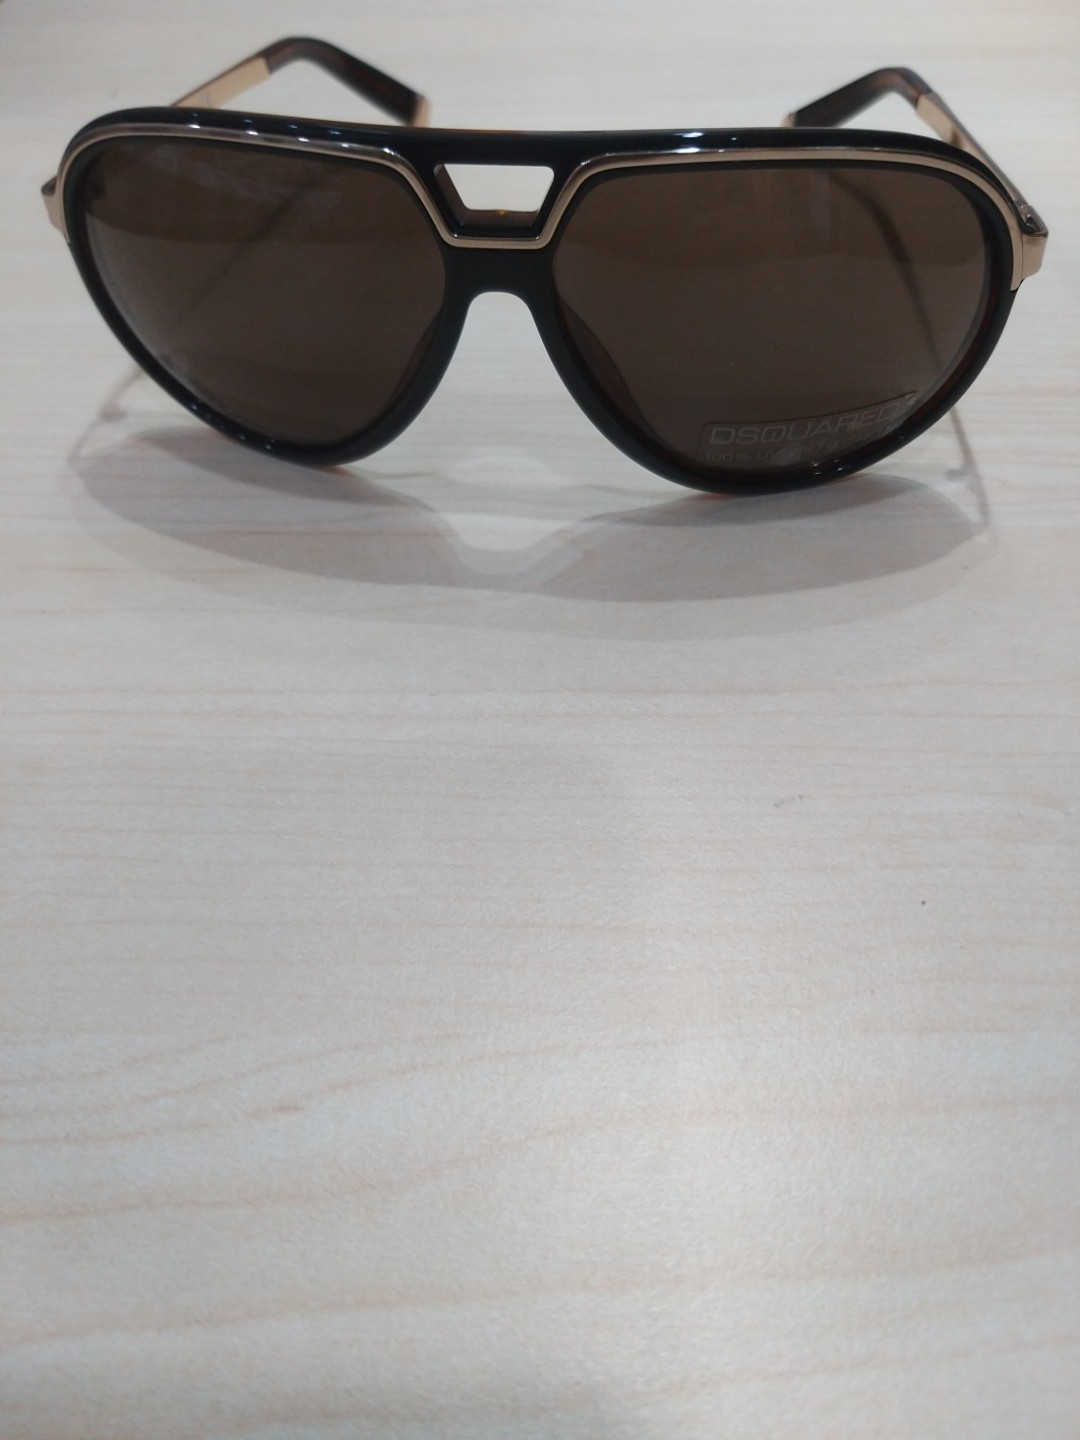 Authentic and genuine dsquared2 sunglasses for sale